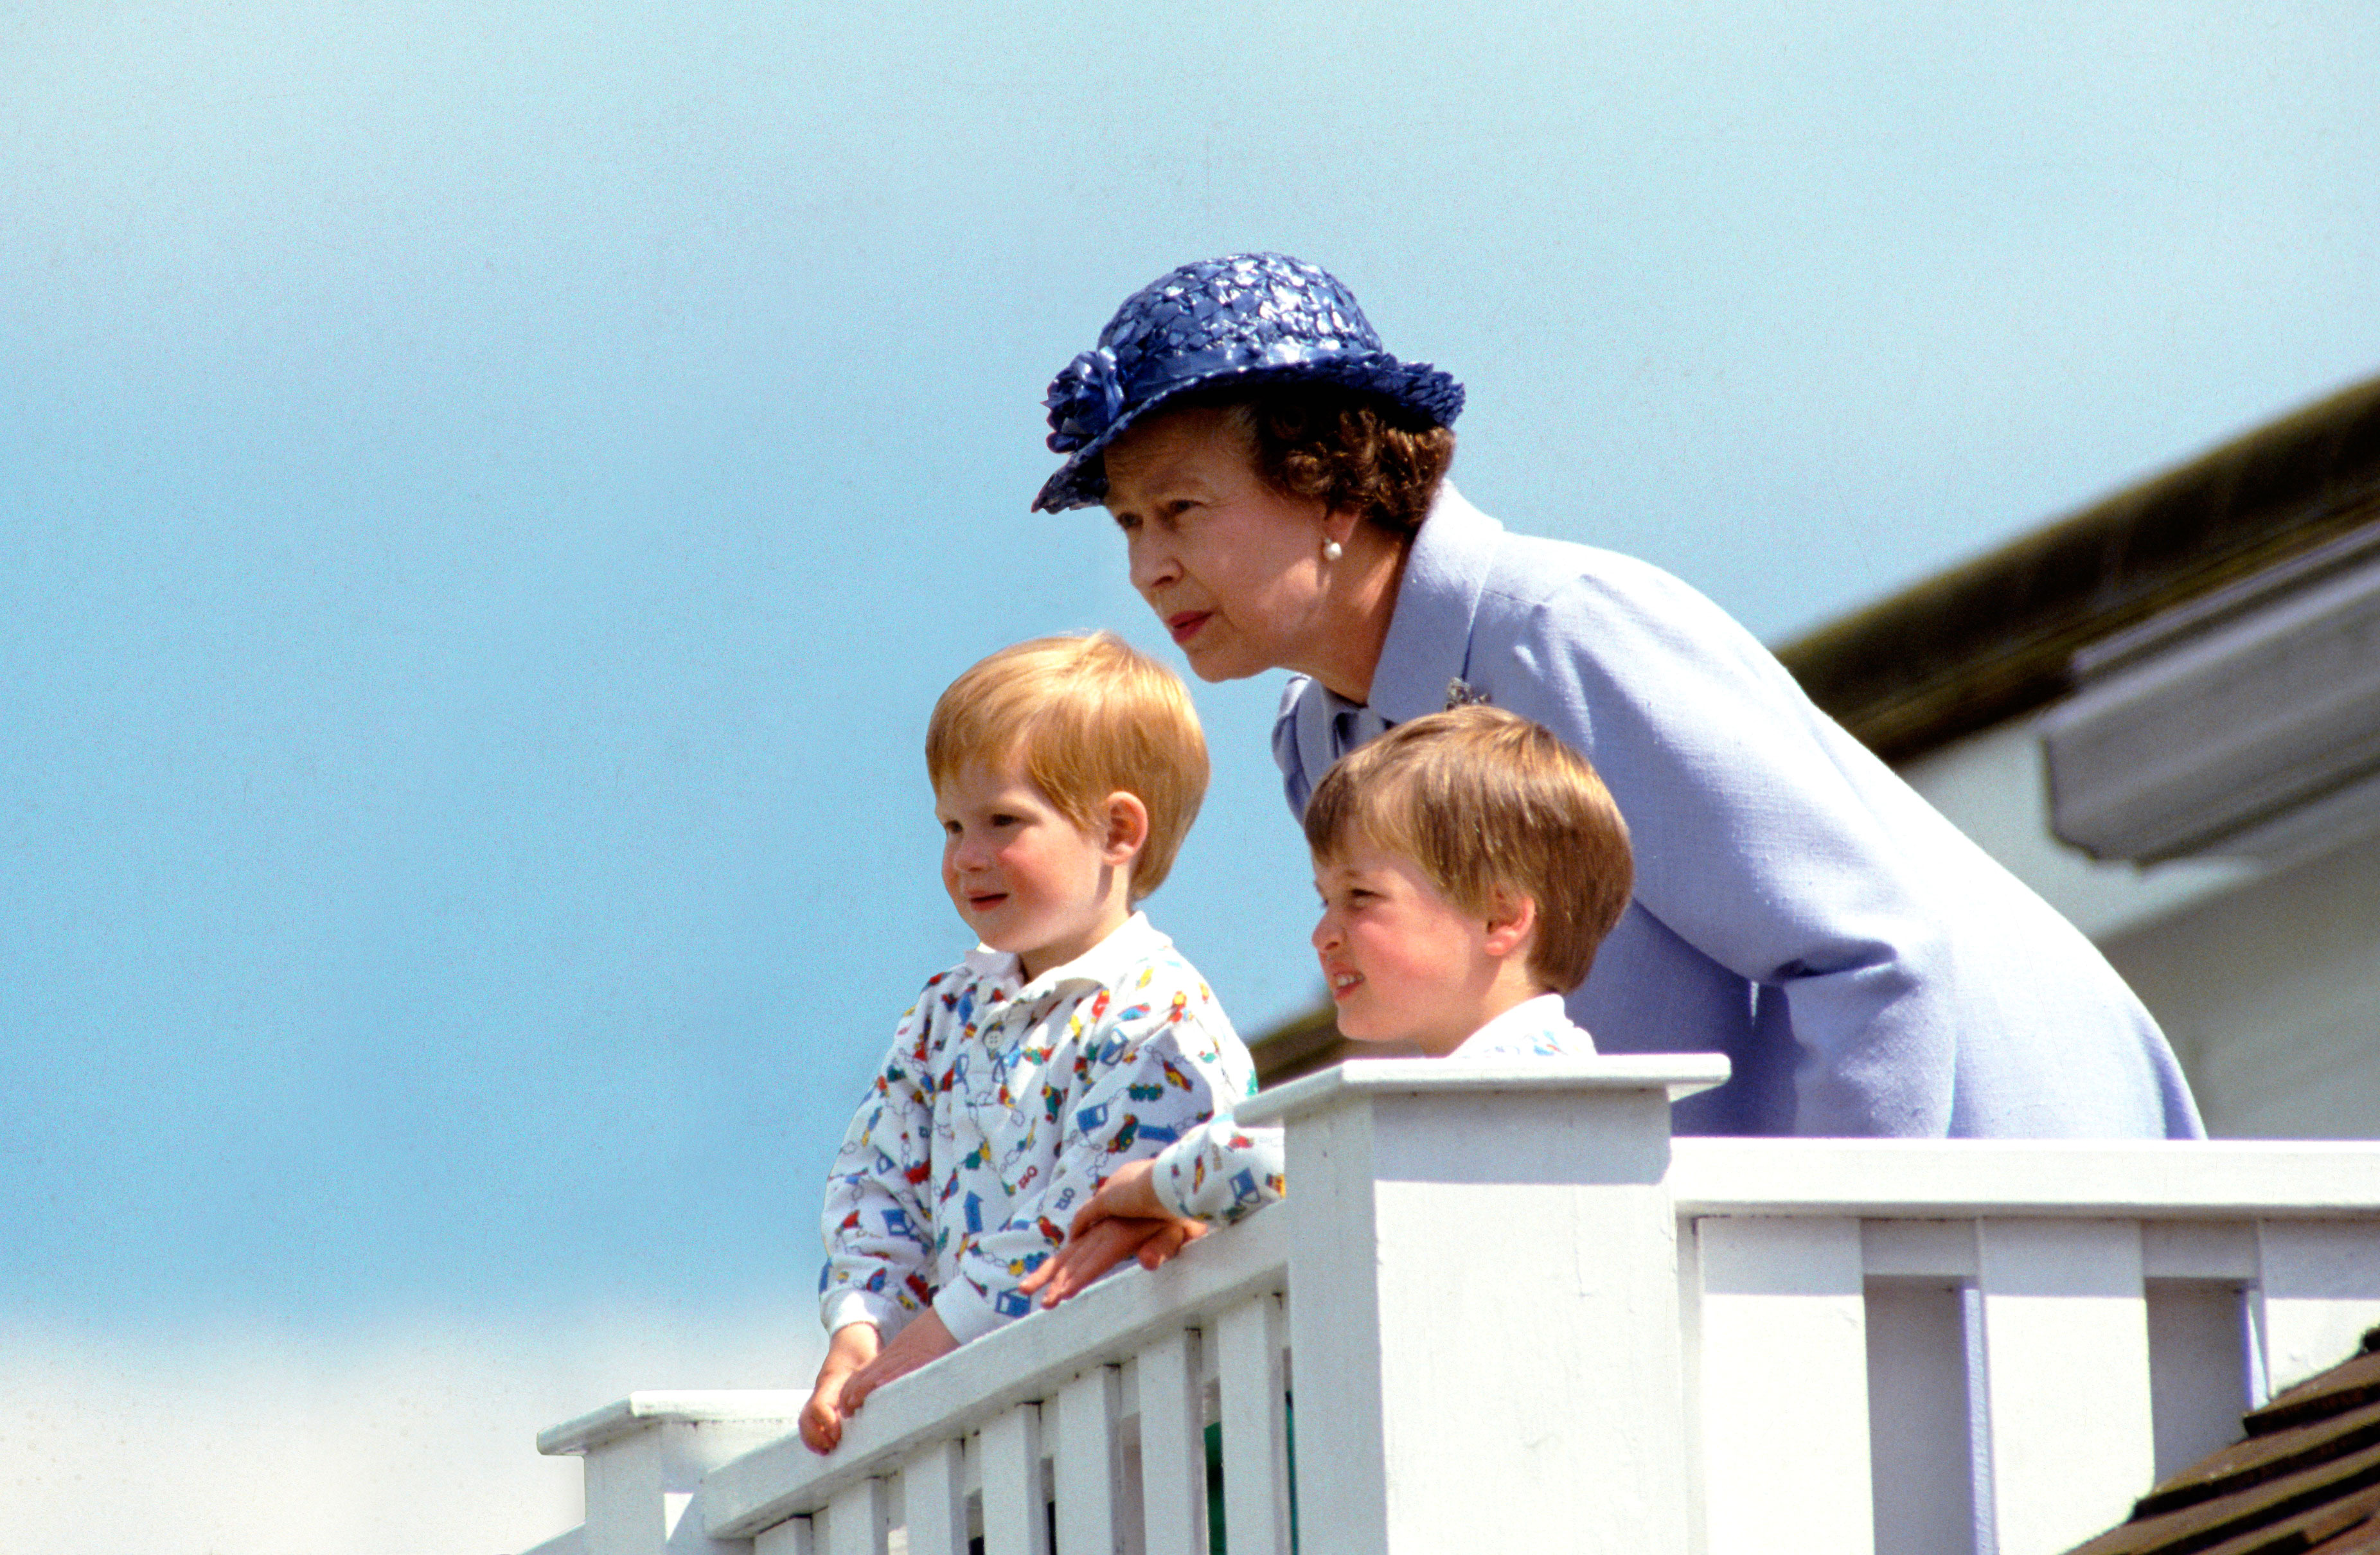 Prince Harry Duchess Meghan Wish Queen Elizabeth Happy 93rd Birthday - The Queen With Prince William And Prince Harry In The Royal Box At Guards Polo Club, Smiths Lawn, Windsor.